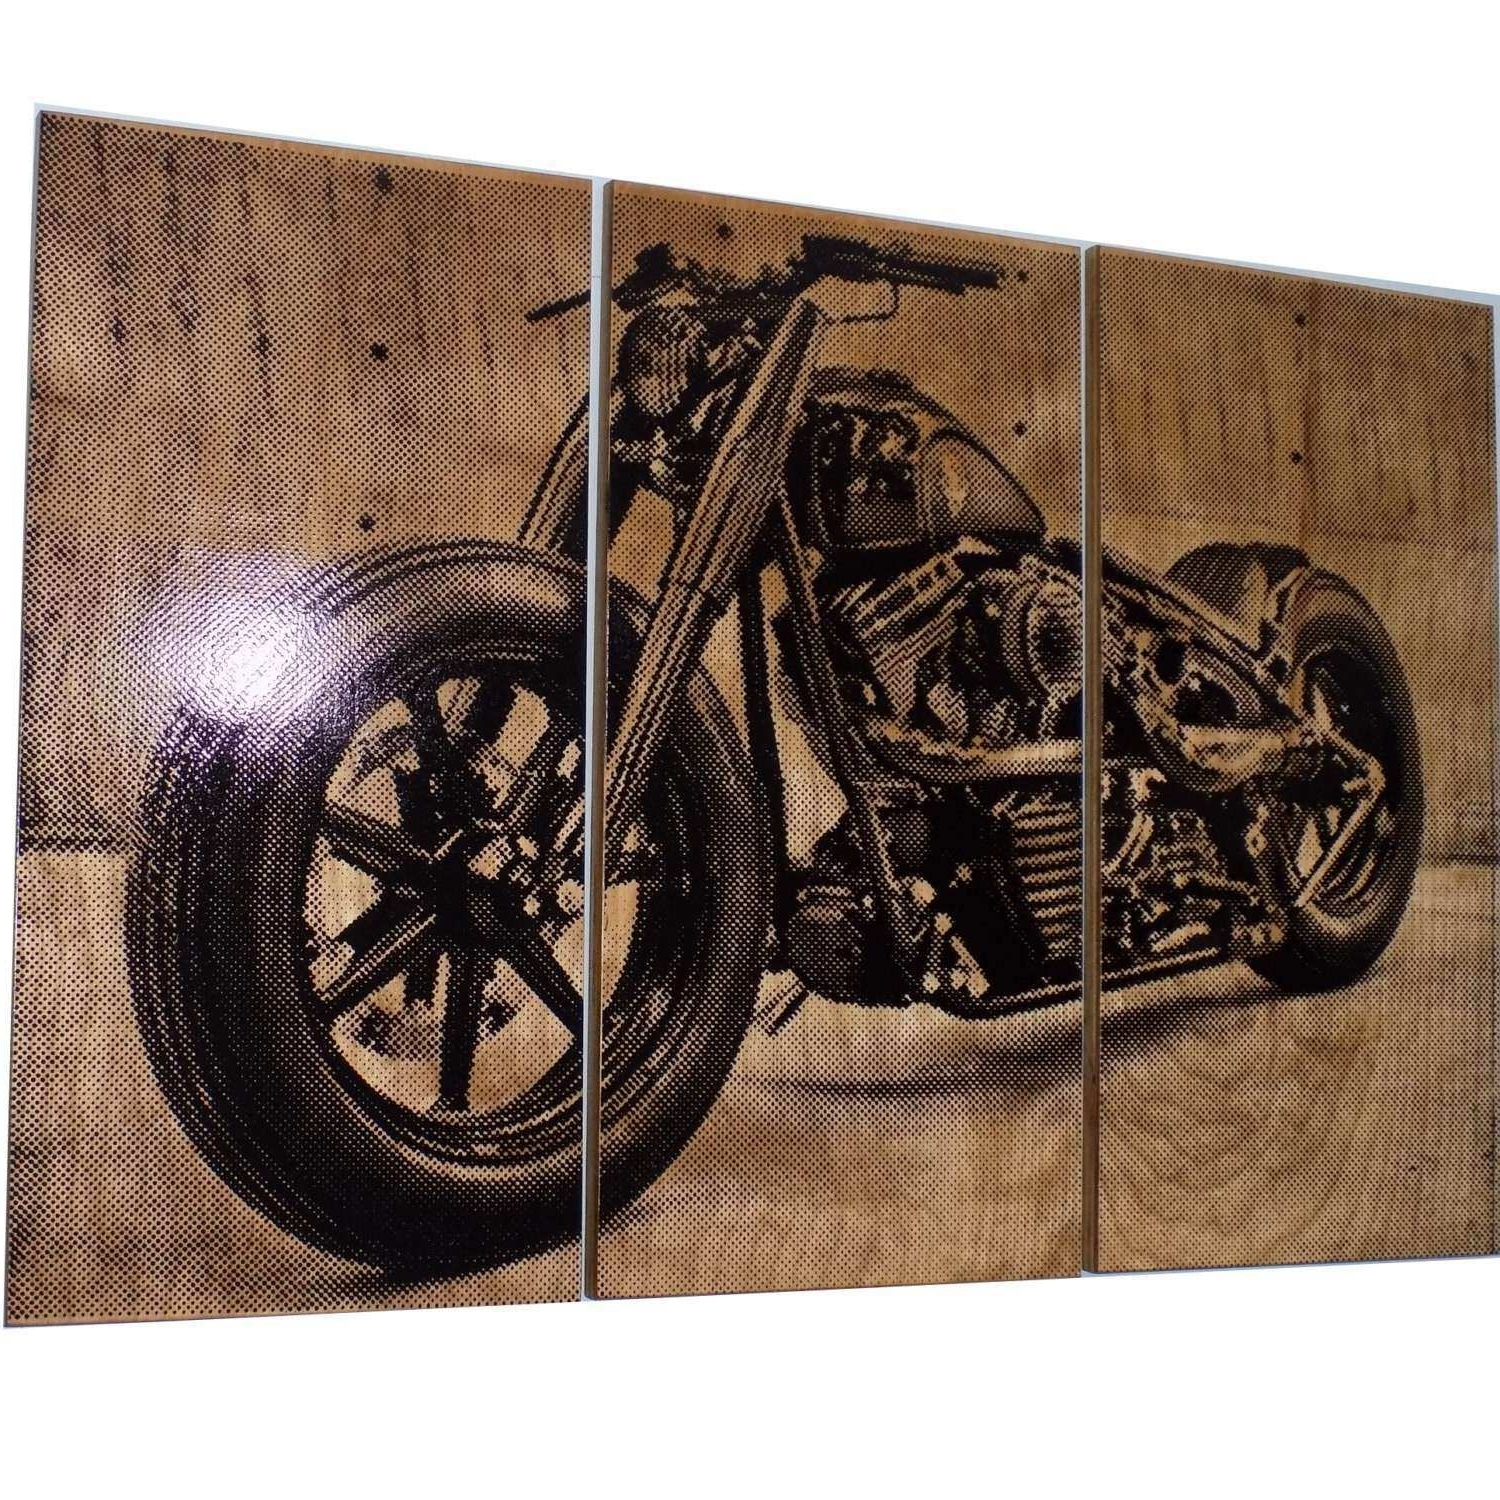 Most Recent Harley Davidson Wall Art Intended For Harley Davidson Prints Wall Art Fresh Harley Davidson Fatboy Softail (View 10 of 15)